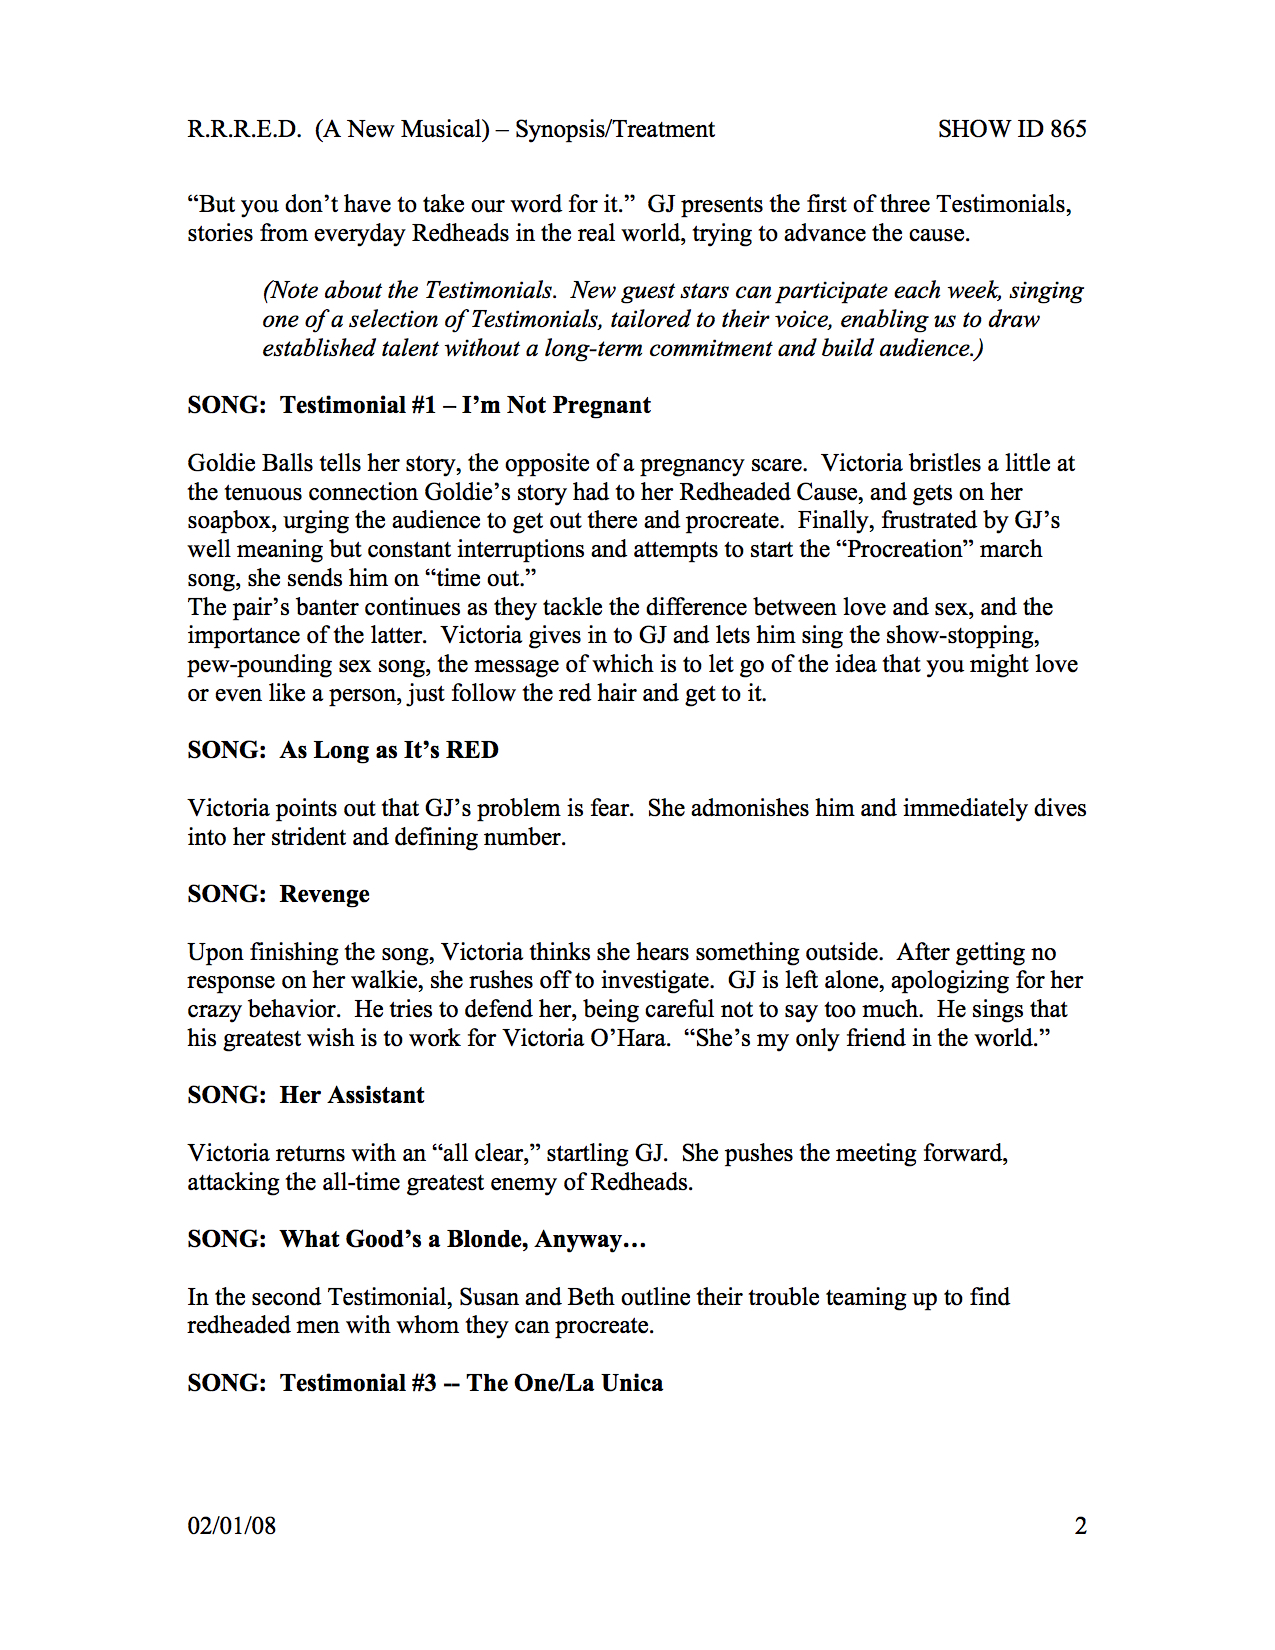 RRRED Synopsis for NYMF page 2.jpg